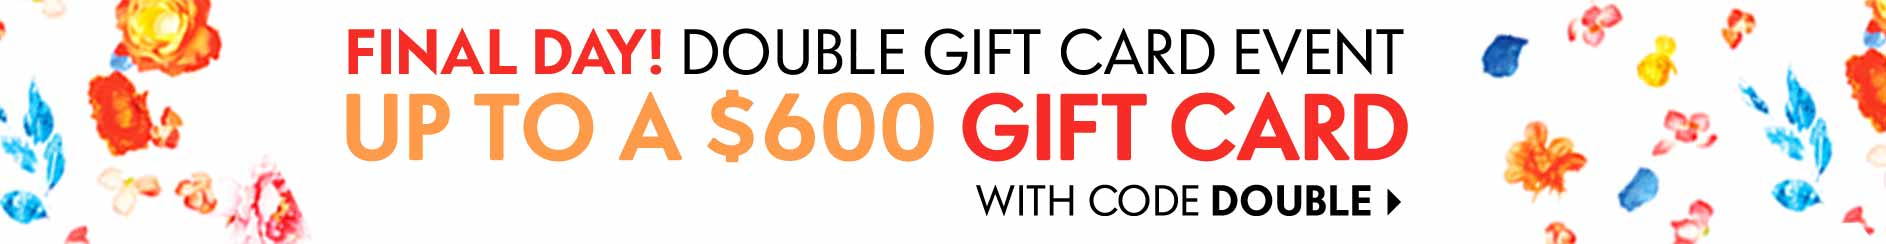 Final day. Double gift card event up to a $600 gift card with code DOUBLE